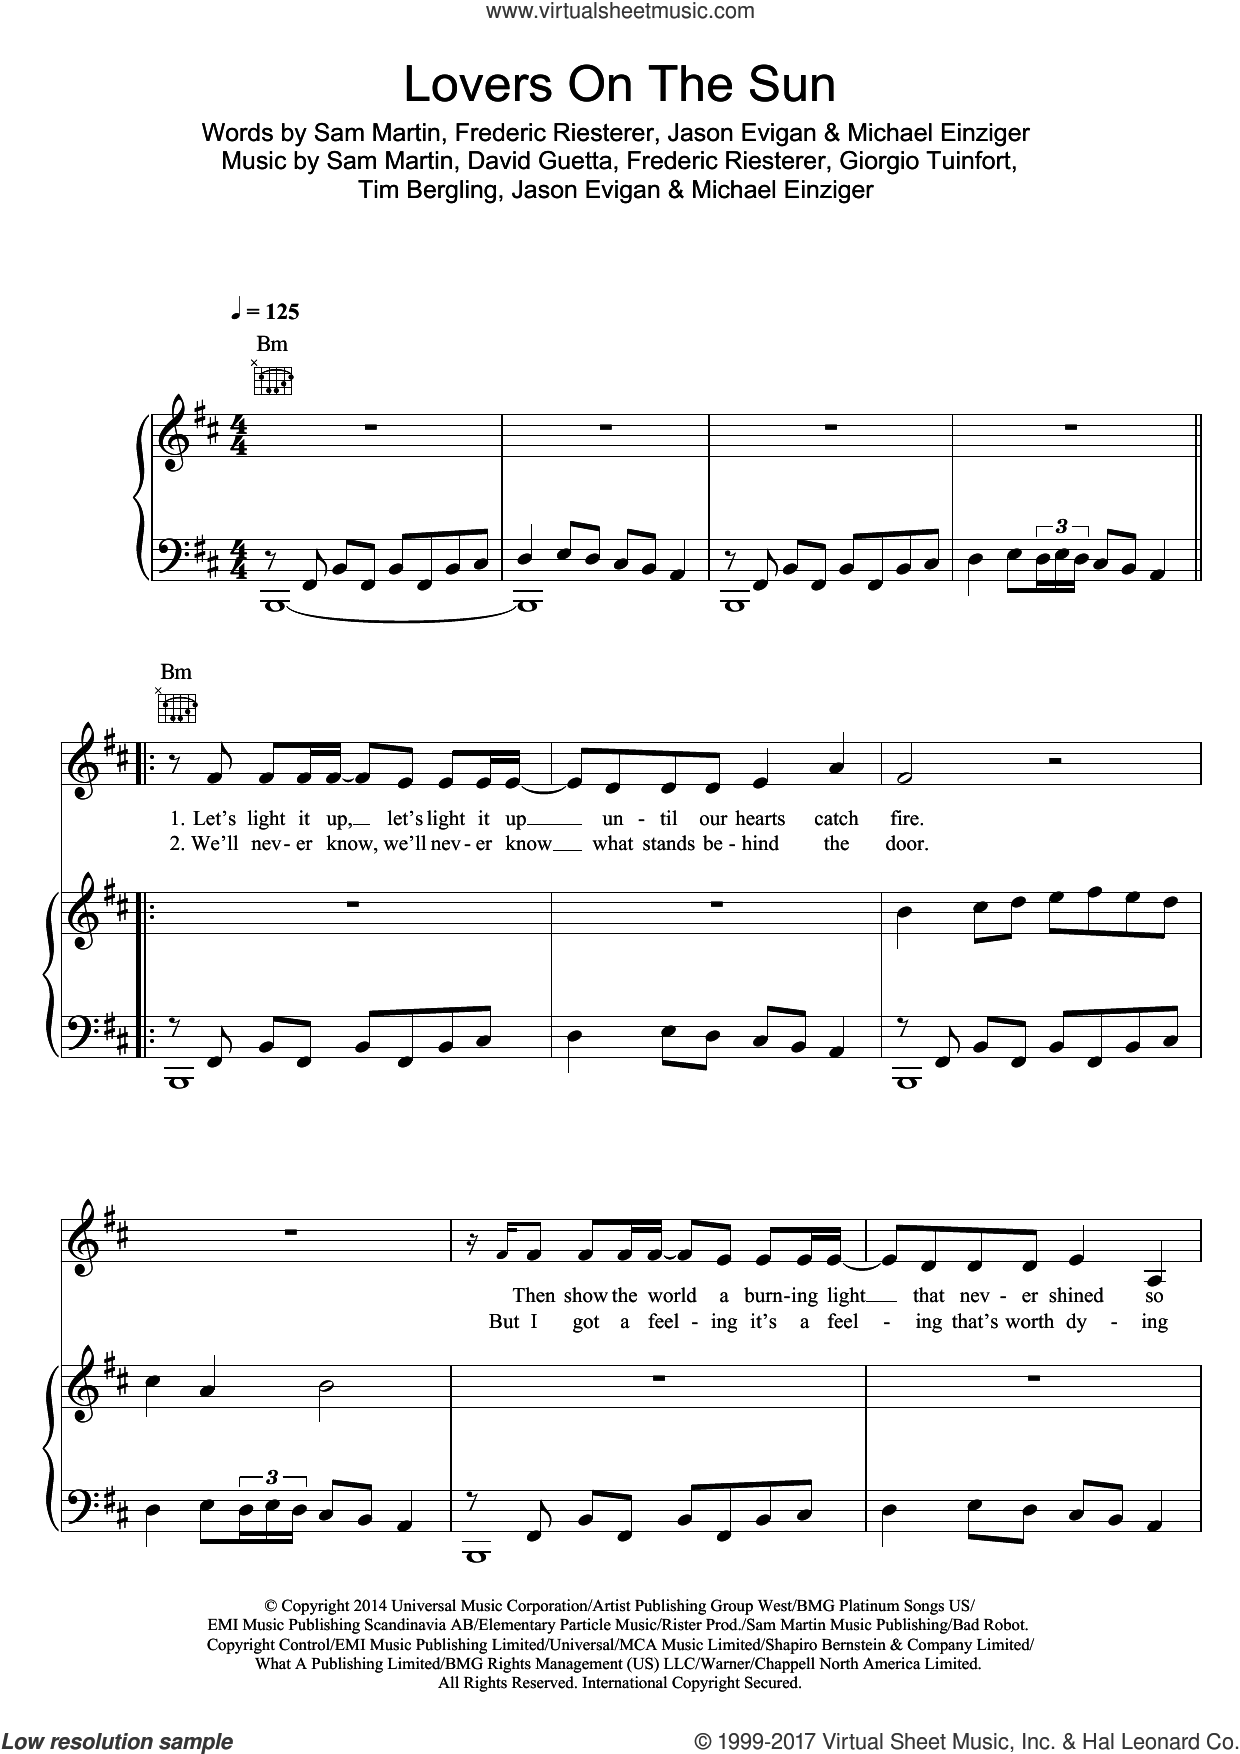 Lovers On The Sun (featuring Sam Martin) sheet music for voice, piano or guitar by David Guetta, Frederic Riesterer, Giorgio Tuinfort, Jason Evigan, Michael Einziger, Sam Martin and Tim Bergling, intermediate skill level